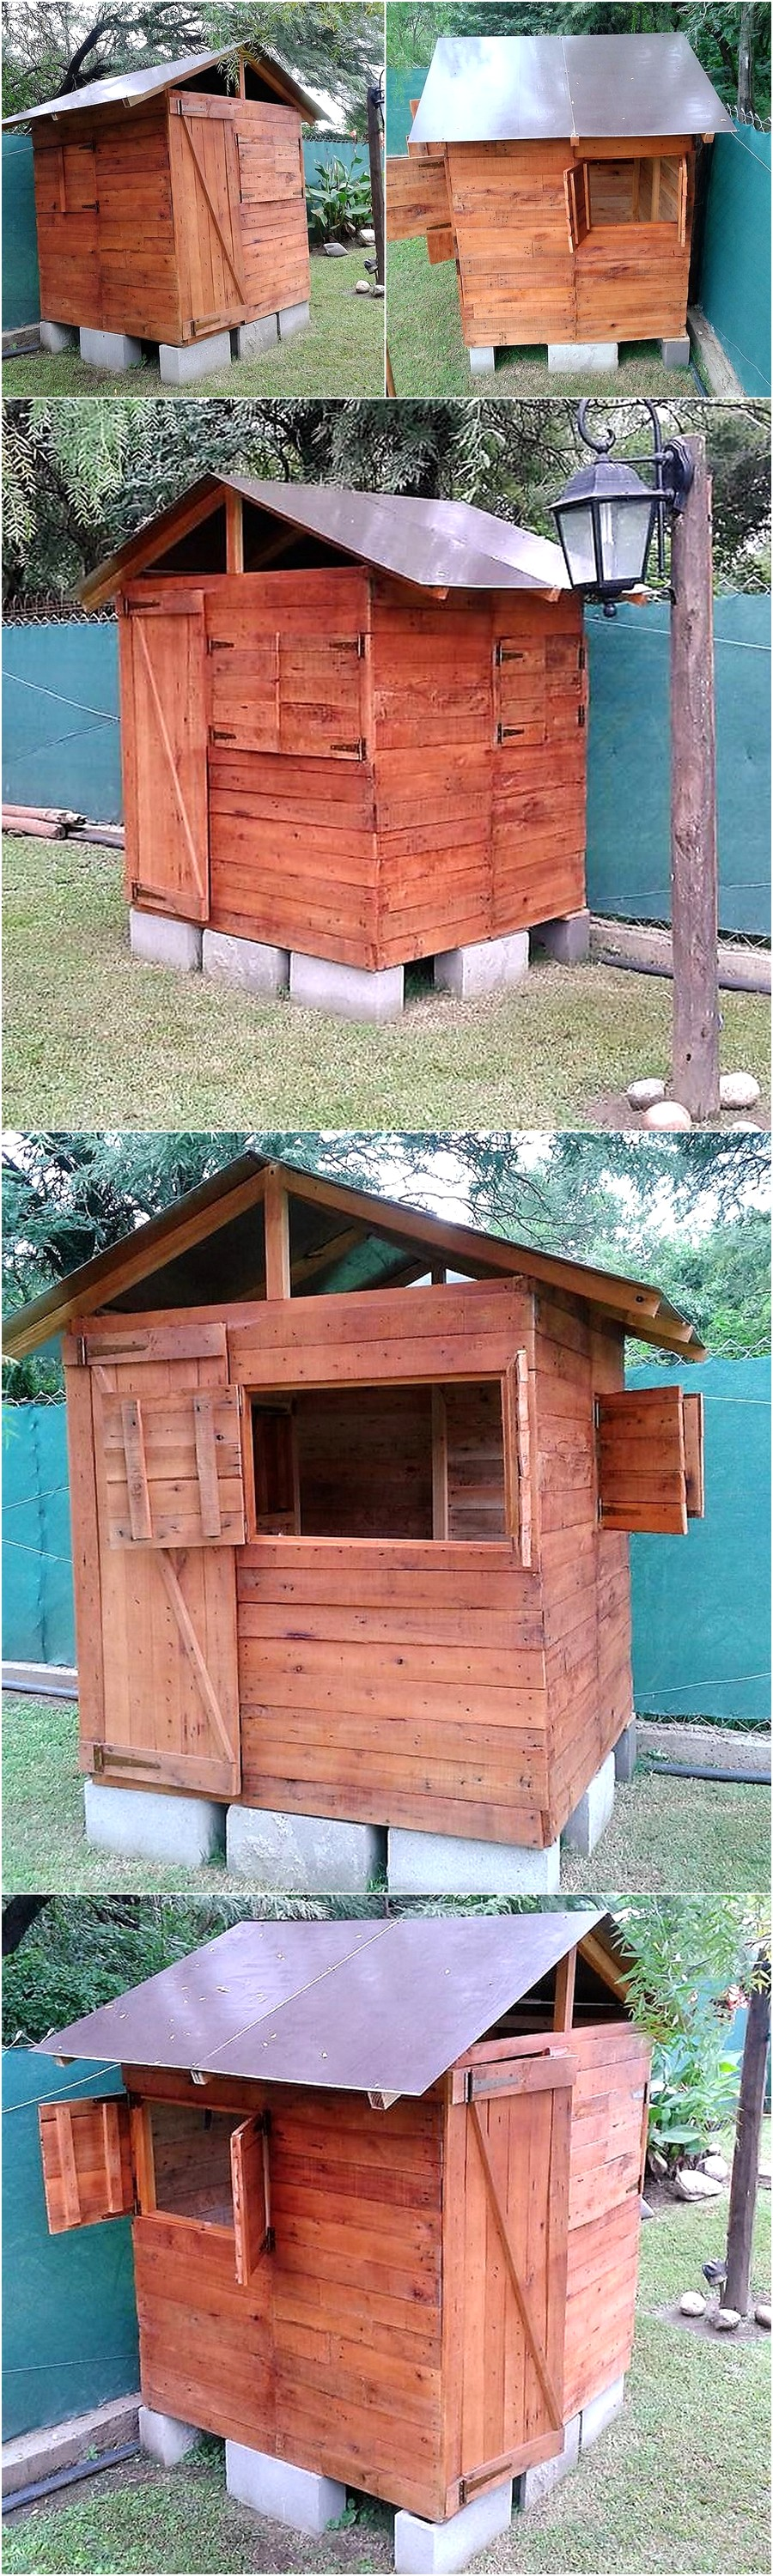 Wooden Pallet Repurposed Garden Cabin